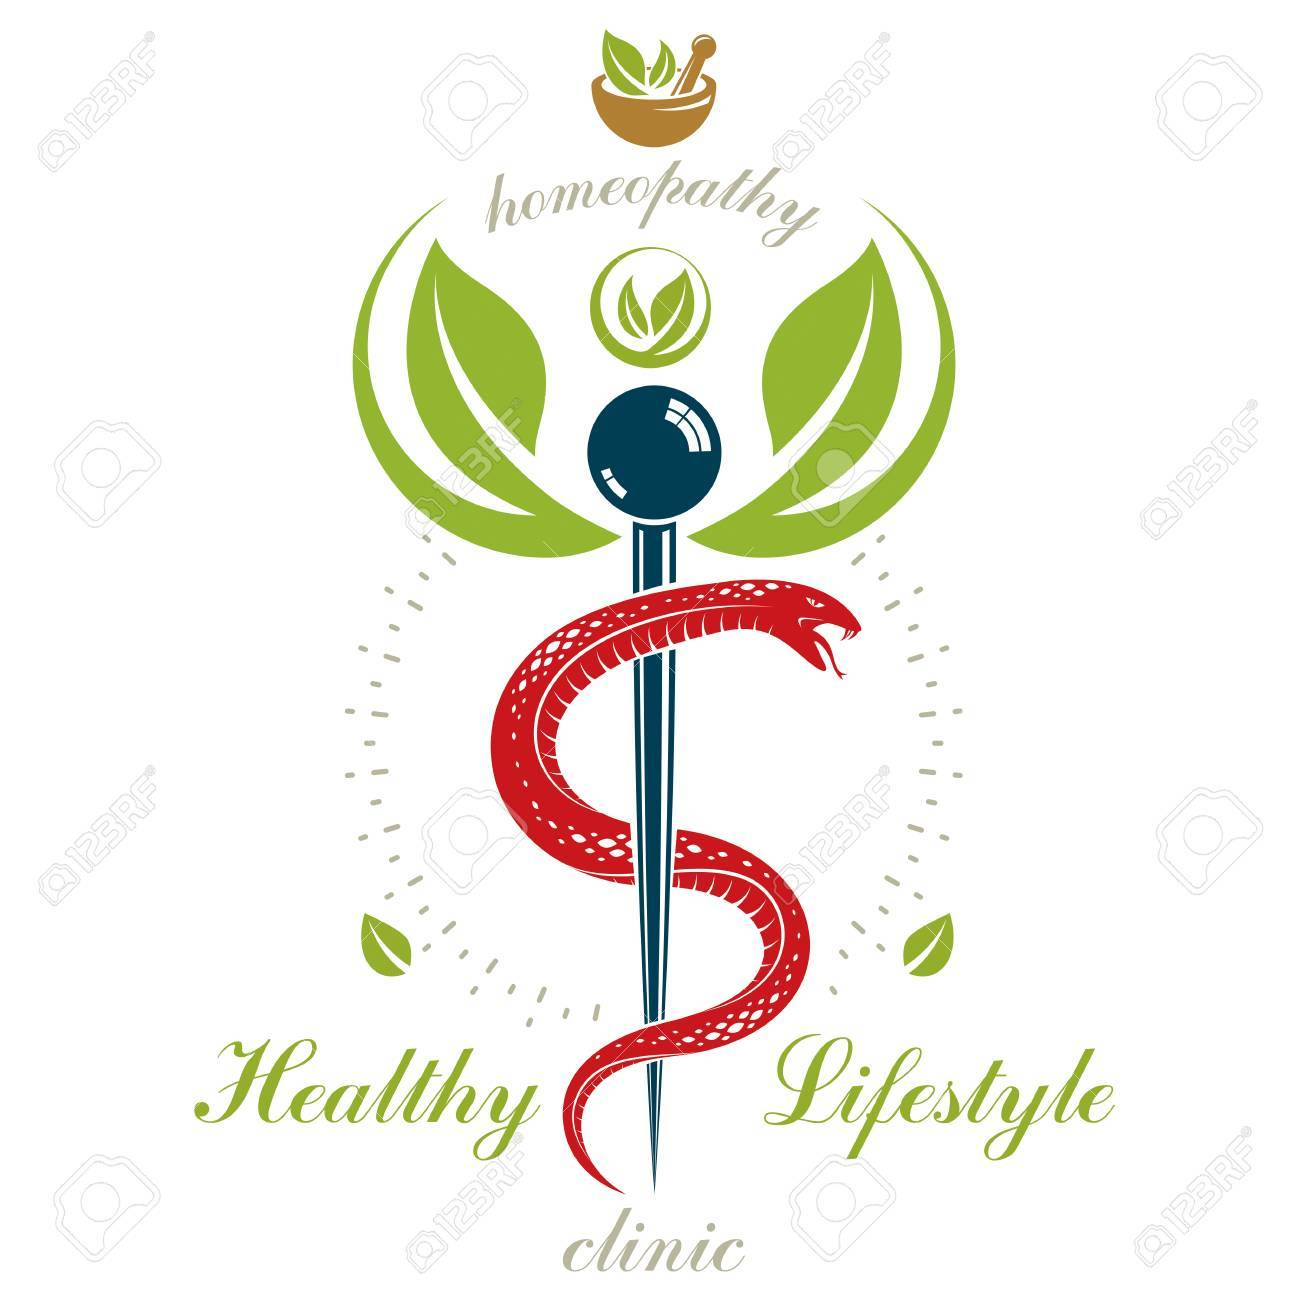 Pharmacy Caduceus icon, vector medical logo for use in holistic